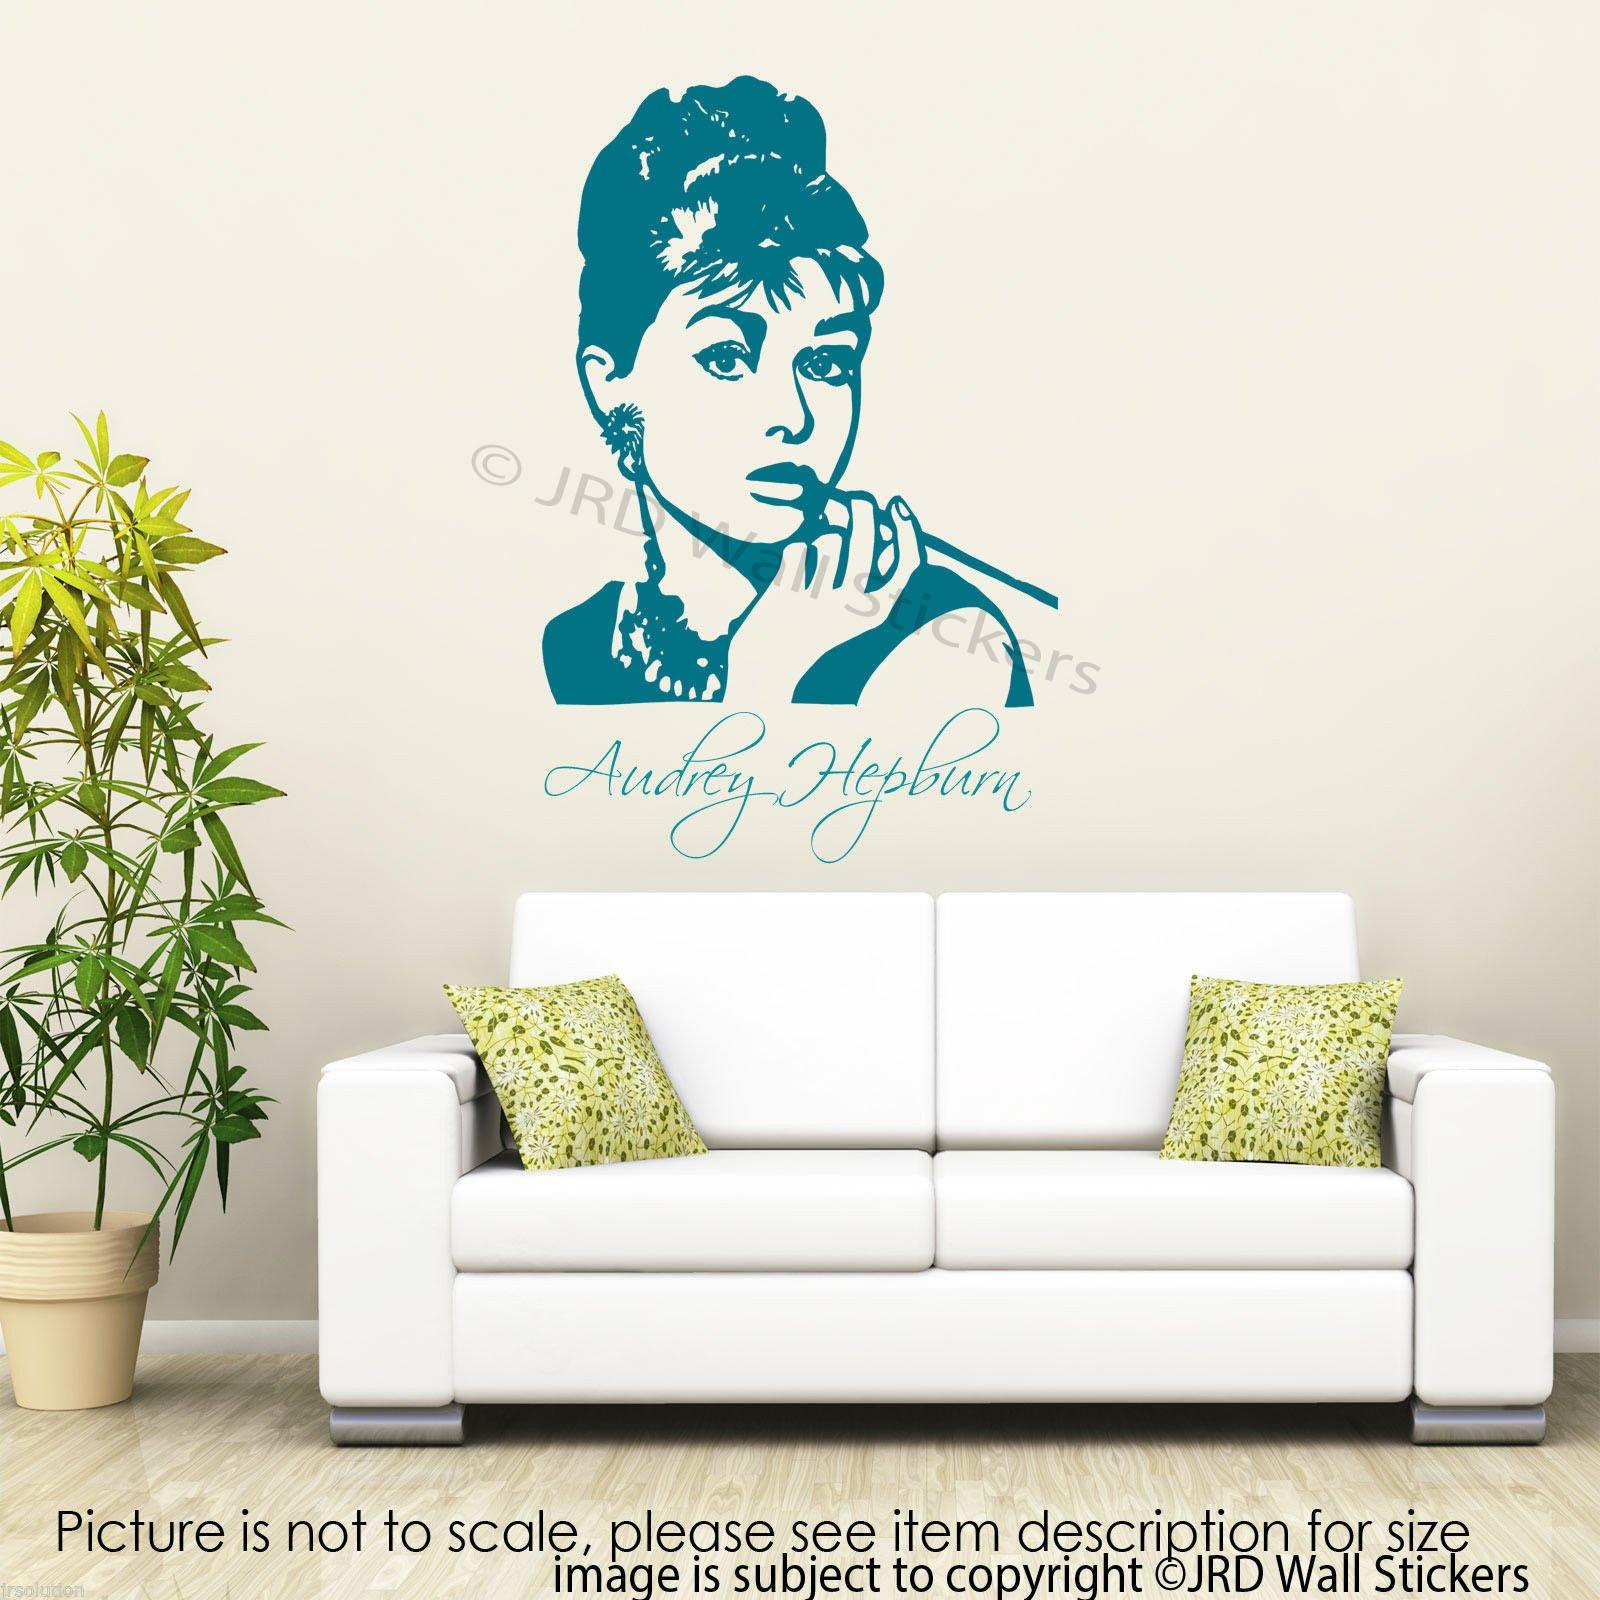 Celebrity jr decal wall stickers amipublicfo Image collections